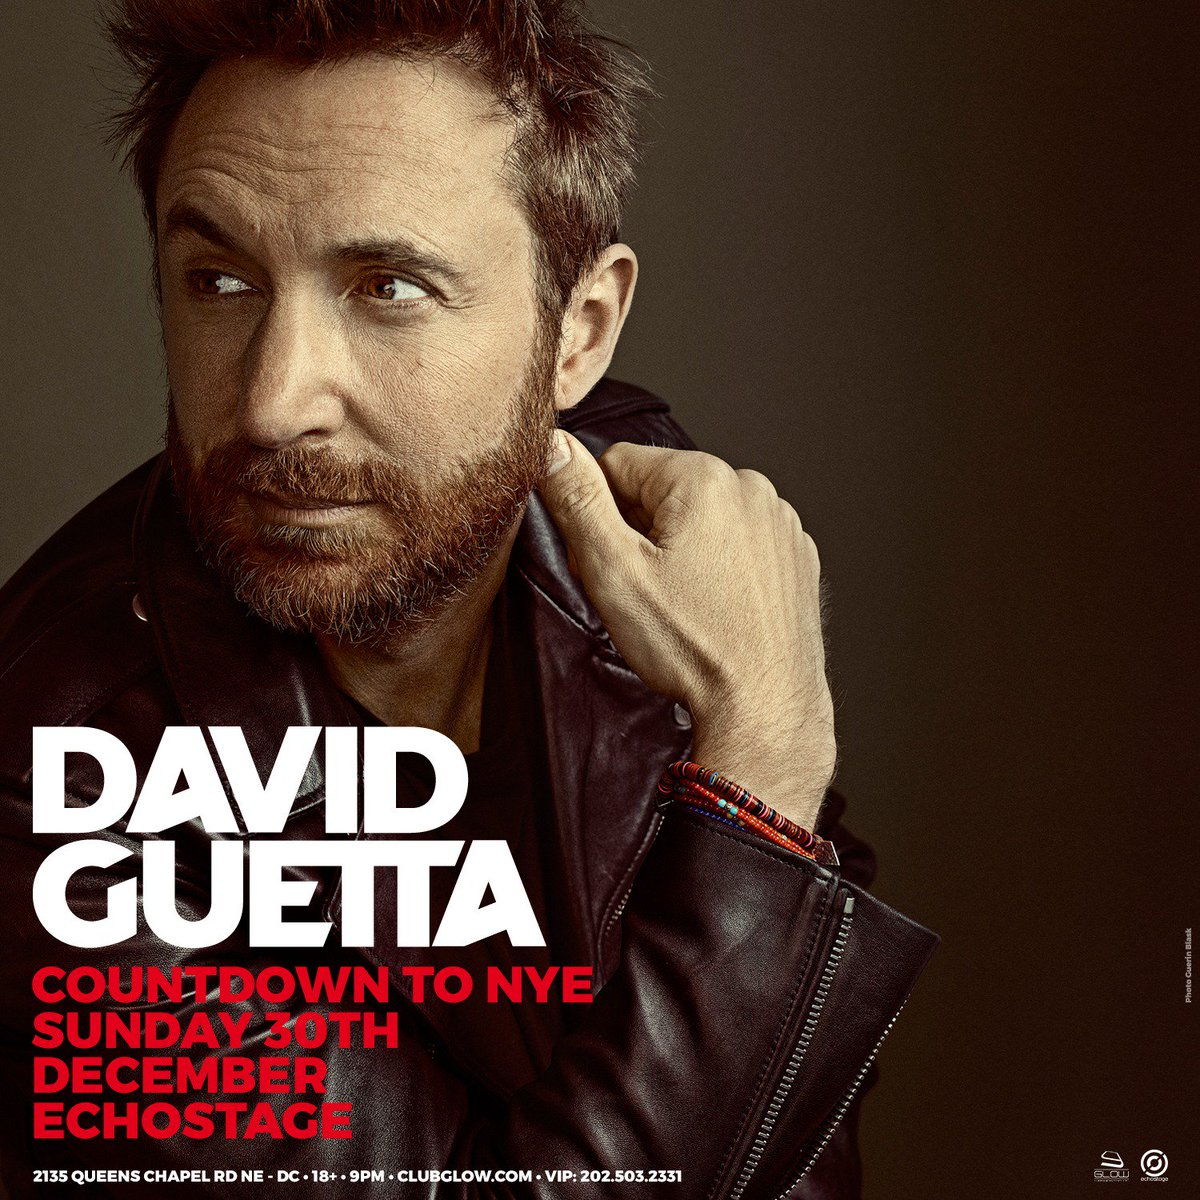 RT @ClubGlow: Tickets for @davidguetta on December 30th @echostage are on sale now!   ???? https://t.co/7knSLaLAu6 https://t.co/F5LcZ4138m